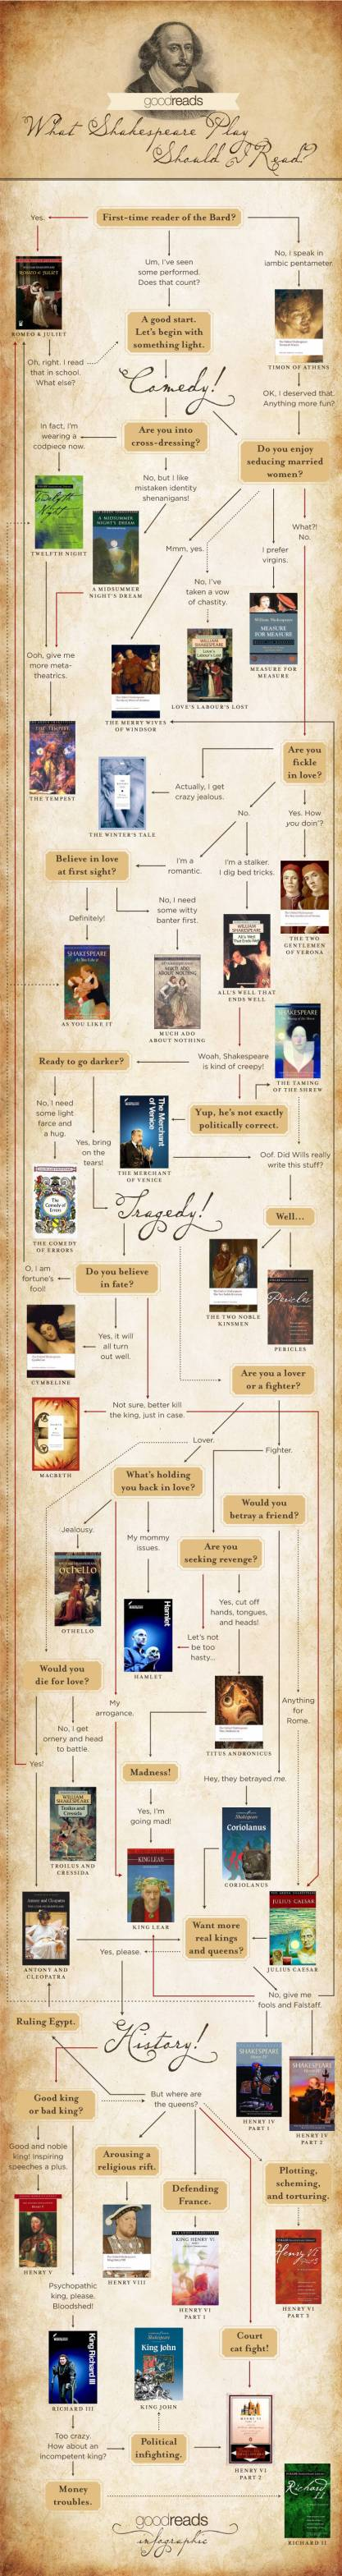 What-Shakespeare-play-should-I-read-full-infographic